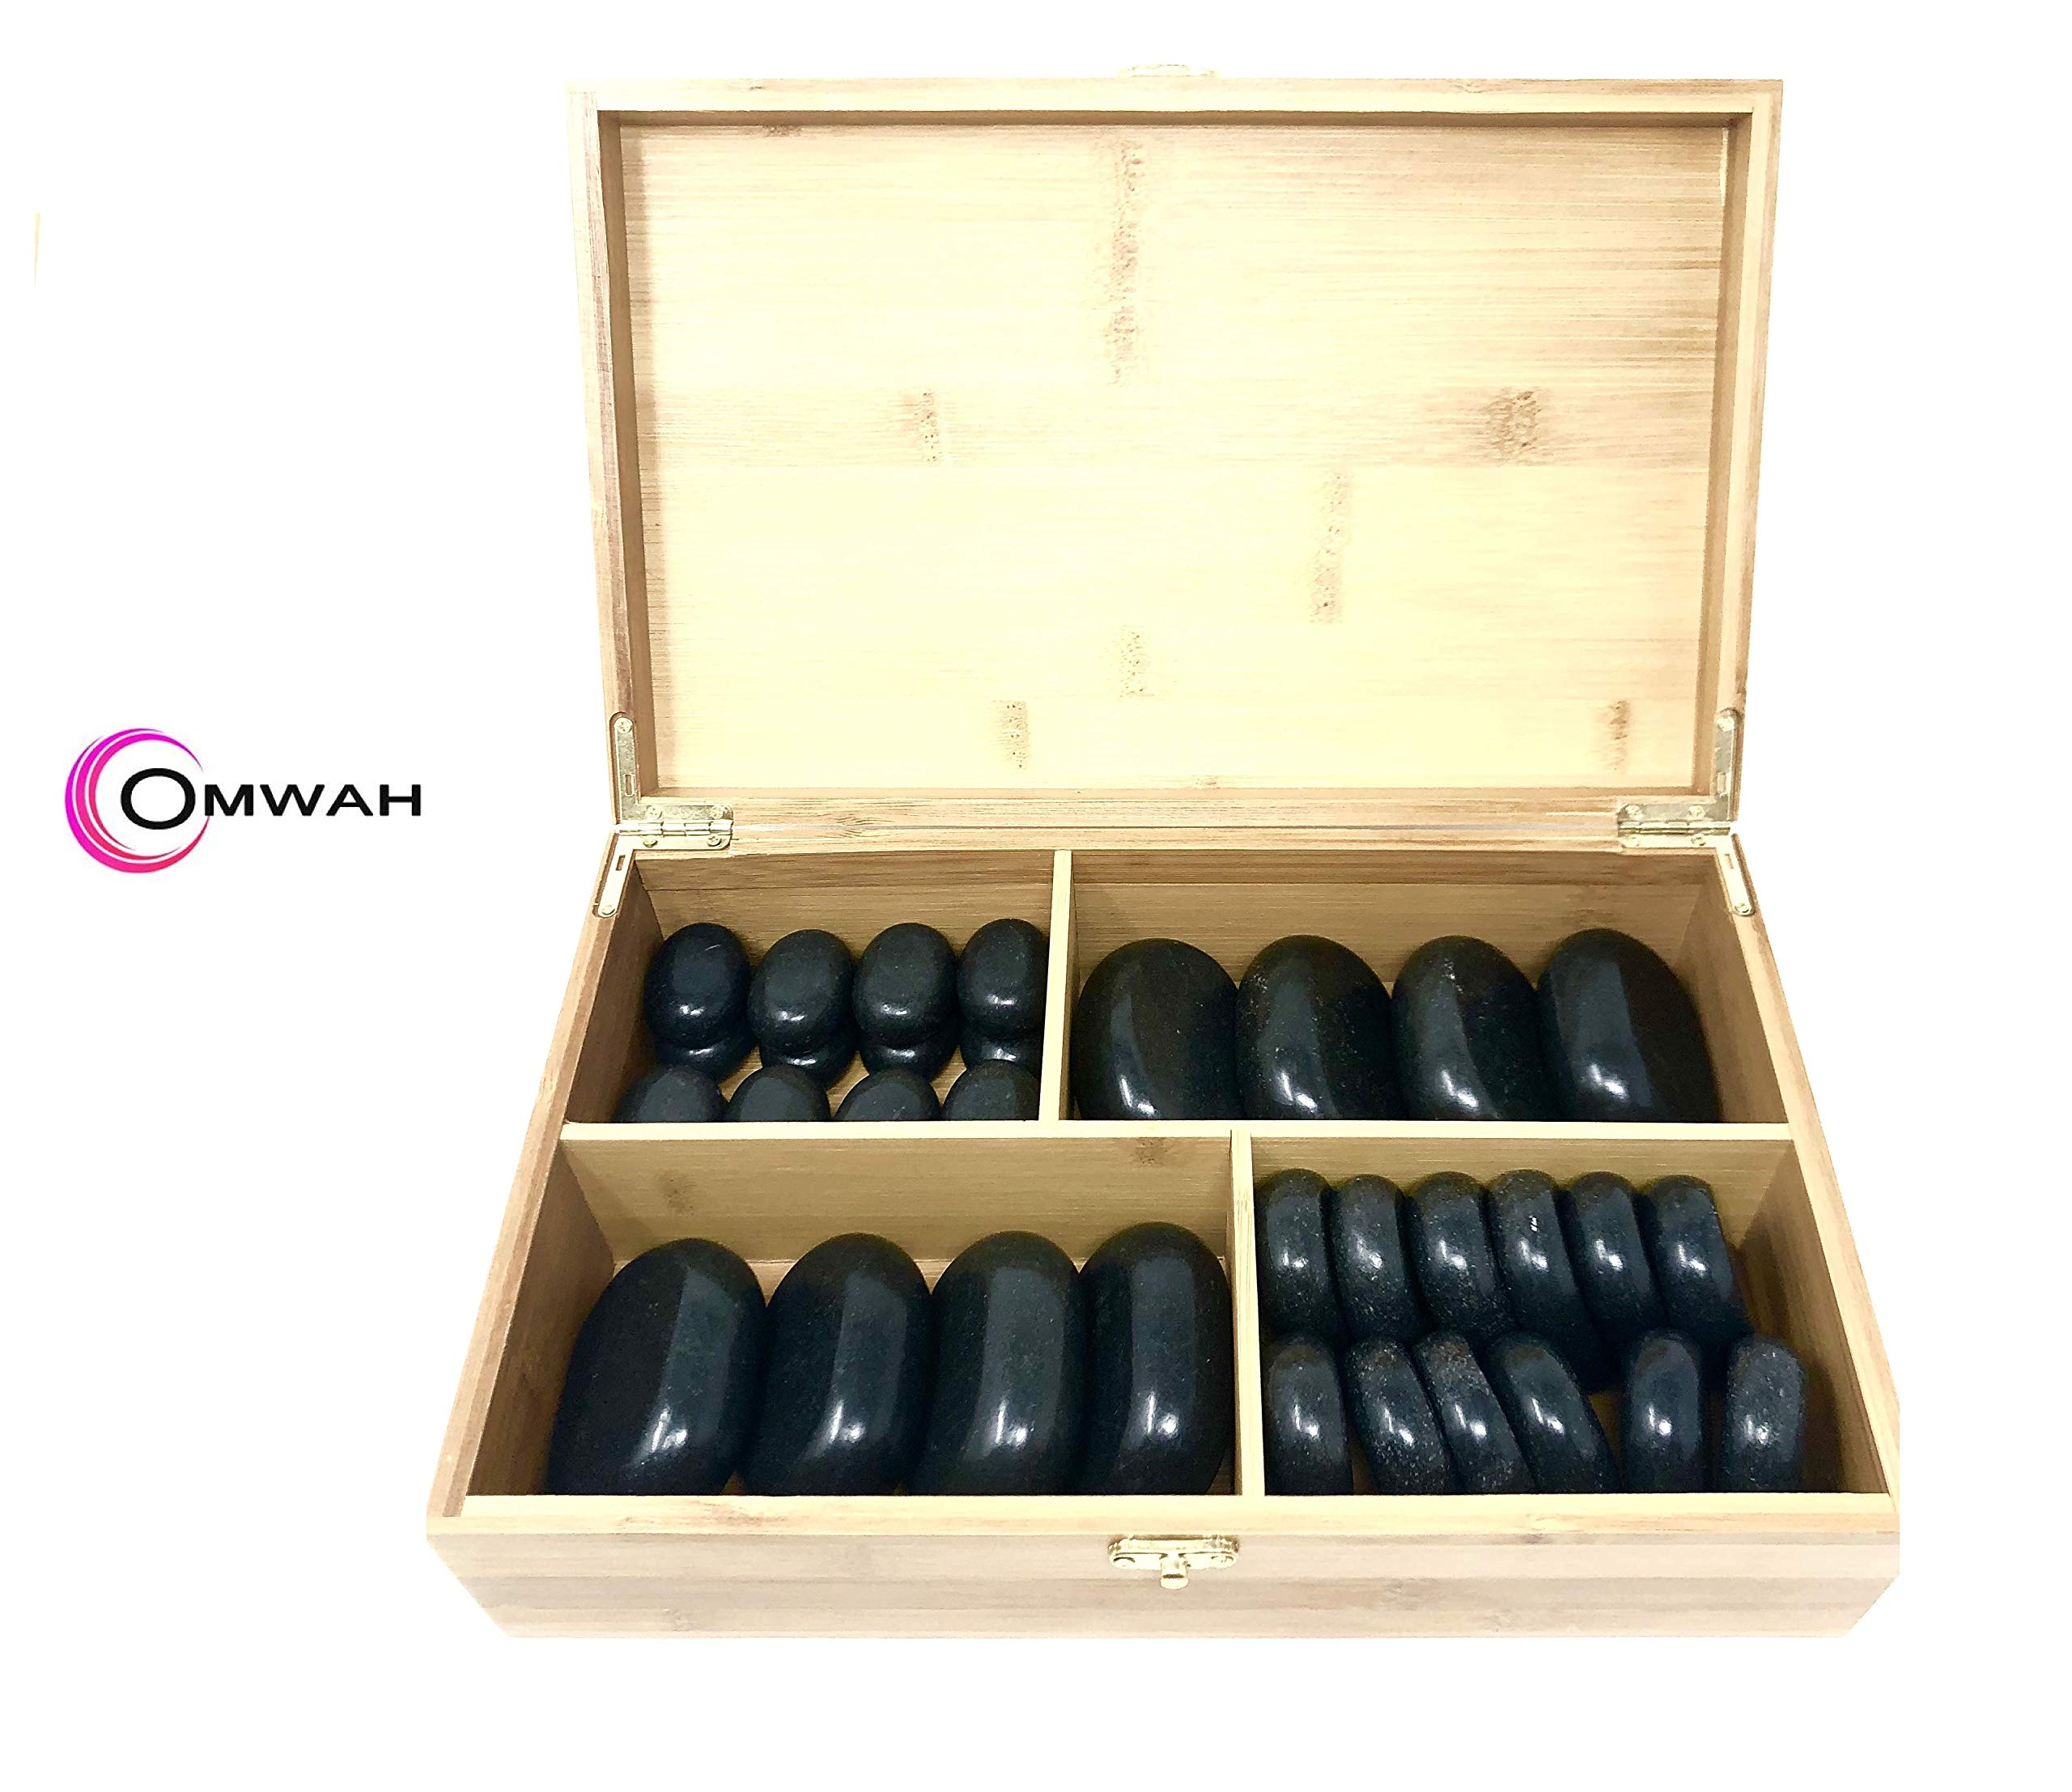 Omwah Basalt Hot Stone Massage Kit 36 Piece with Bamboo Box